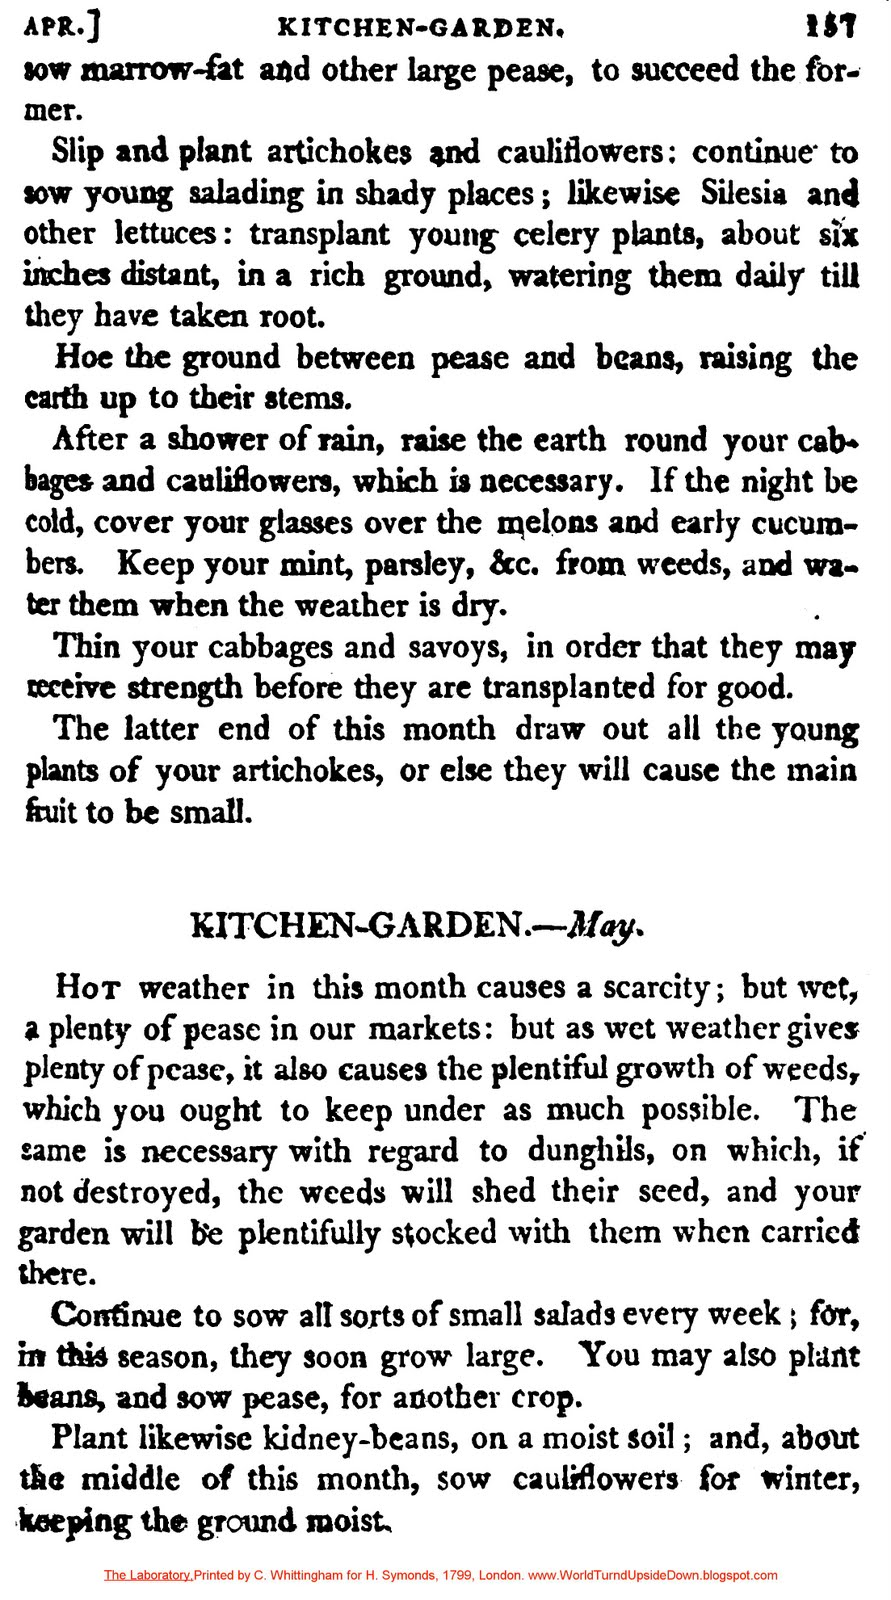 The Victorian Kitchen Garden Dvd World Turnd Upside Down Colonial Kitchen Garden Directions For